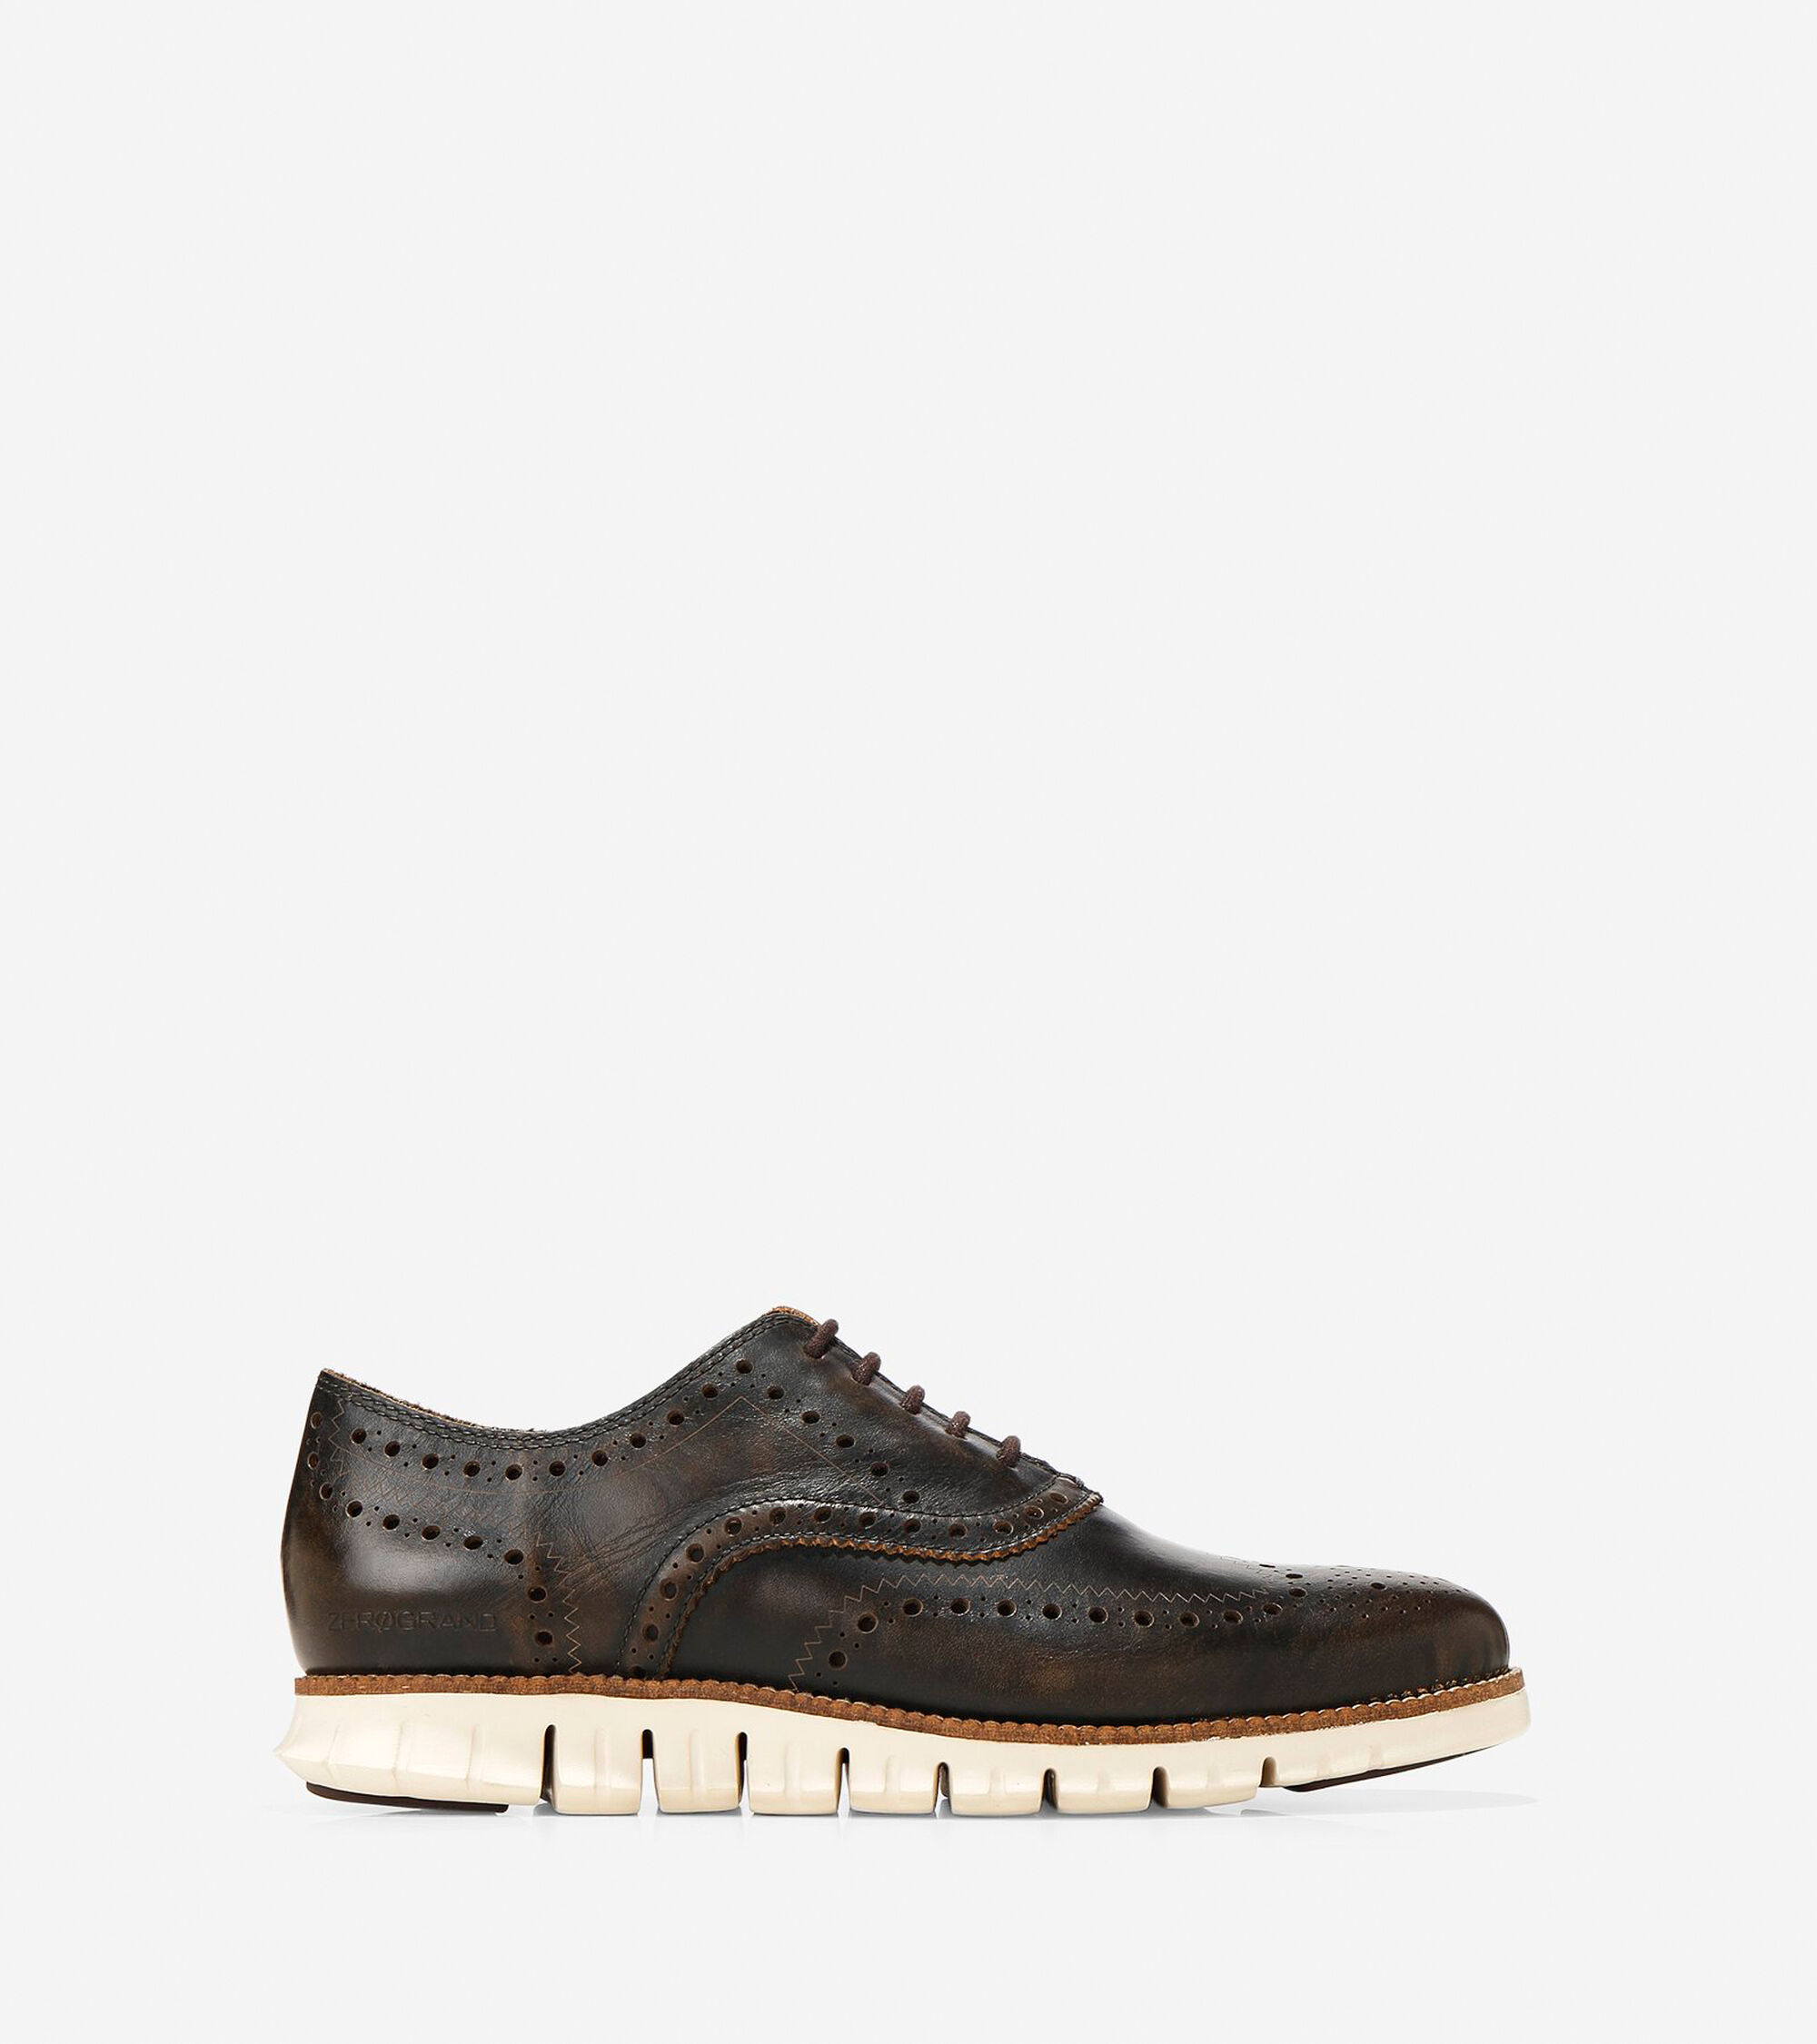 Cole Haan Shoes Mens Sale Images Style Decorating Ideas